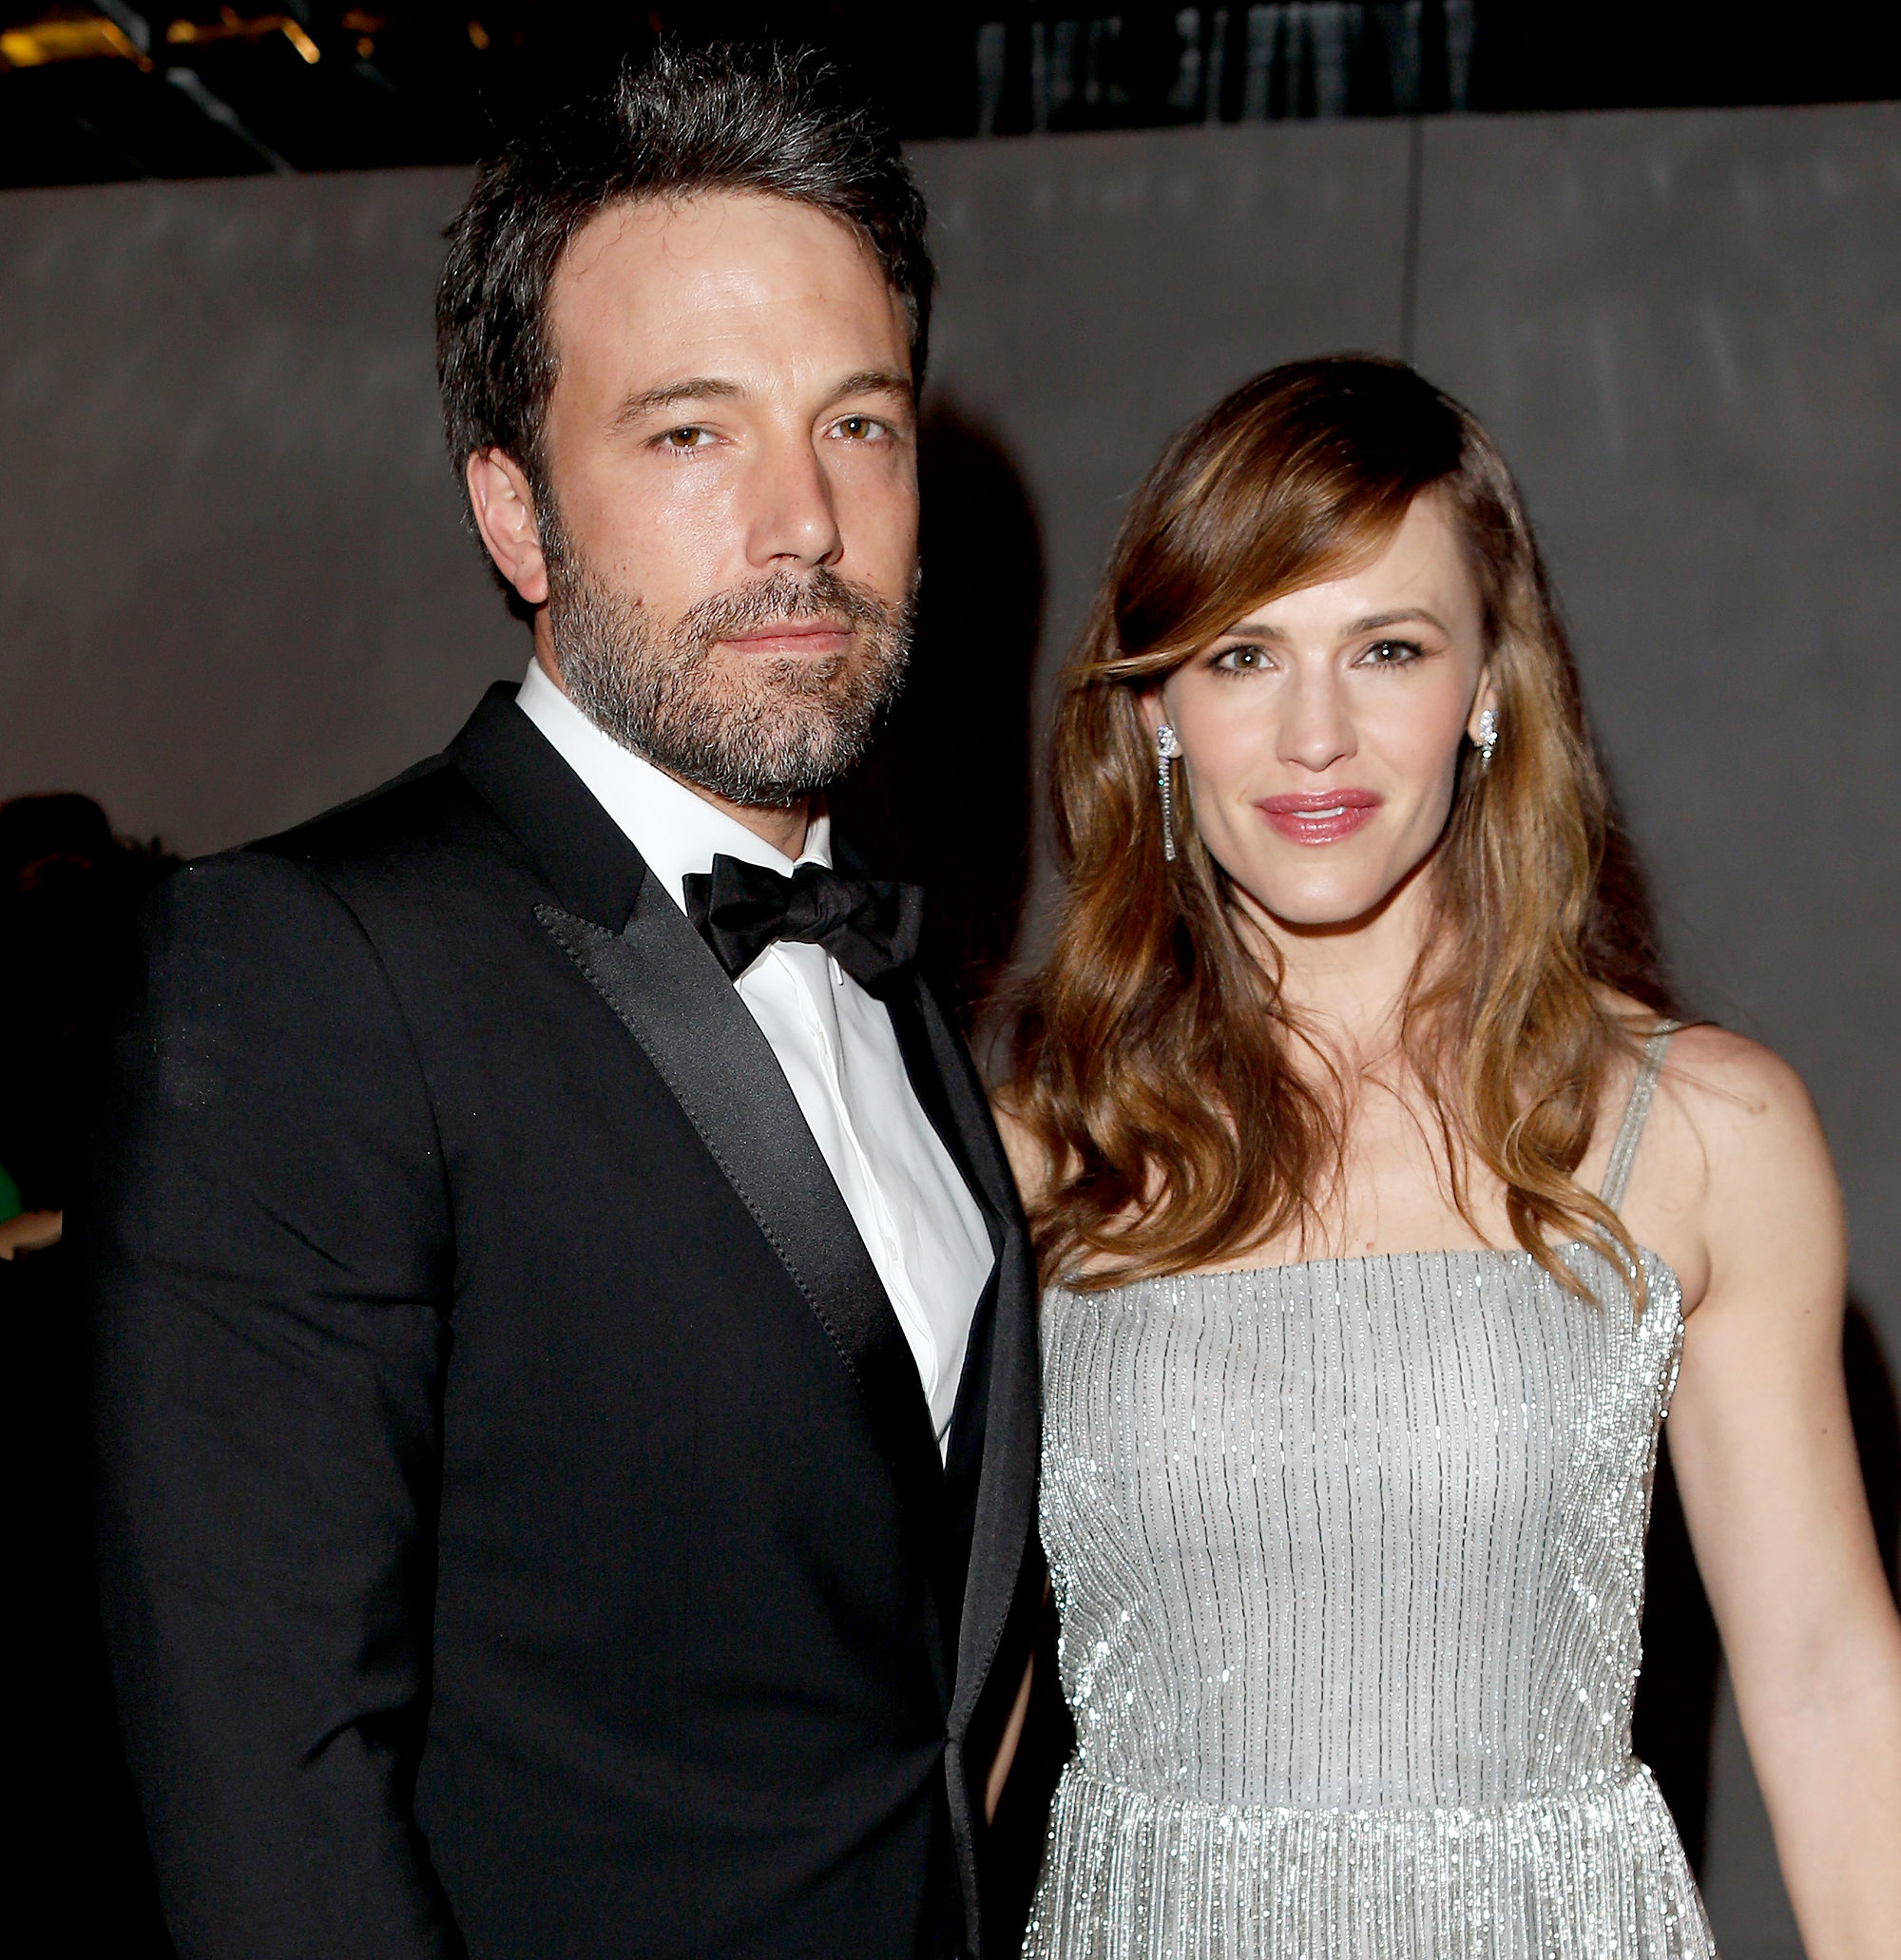 "Ben-Affleck-and-Jennifer-Garner-coparenting - Affleck told Ellen DeGeneres in March 2016 that he and Garner are ""good friends."" He added: ""We're doing our best and our kids are fabulous and we're working our best for them. And what else are you gonna do?"""